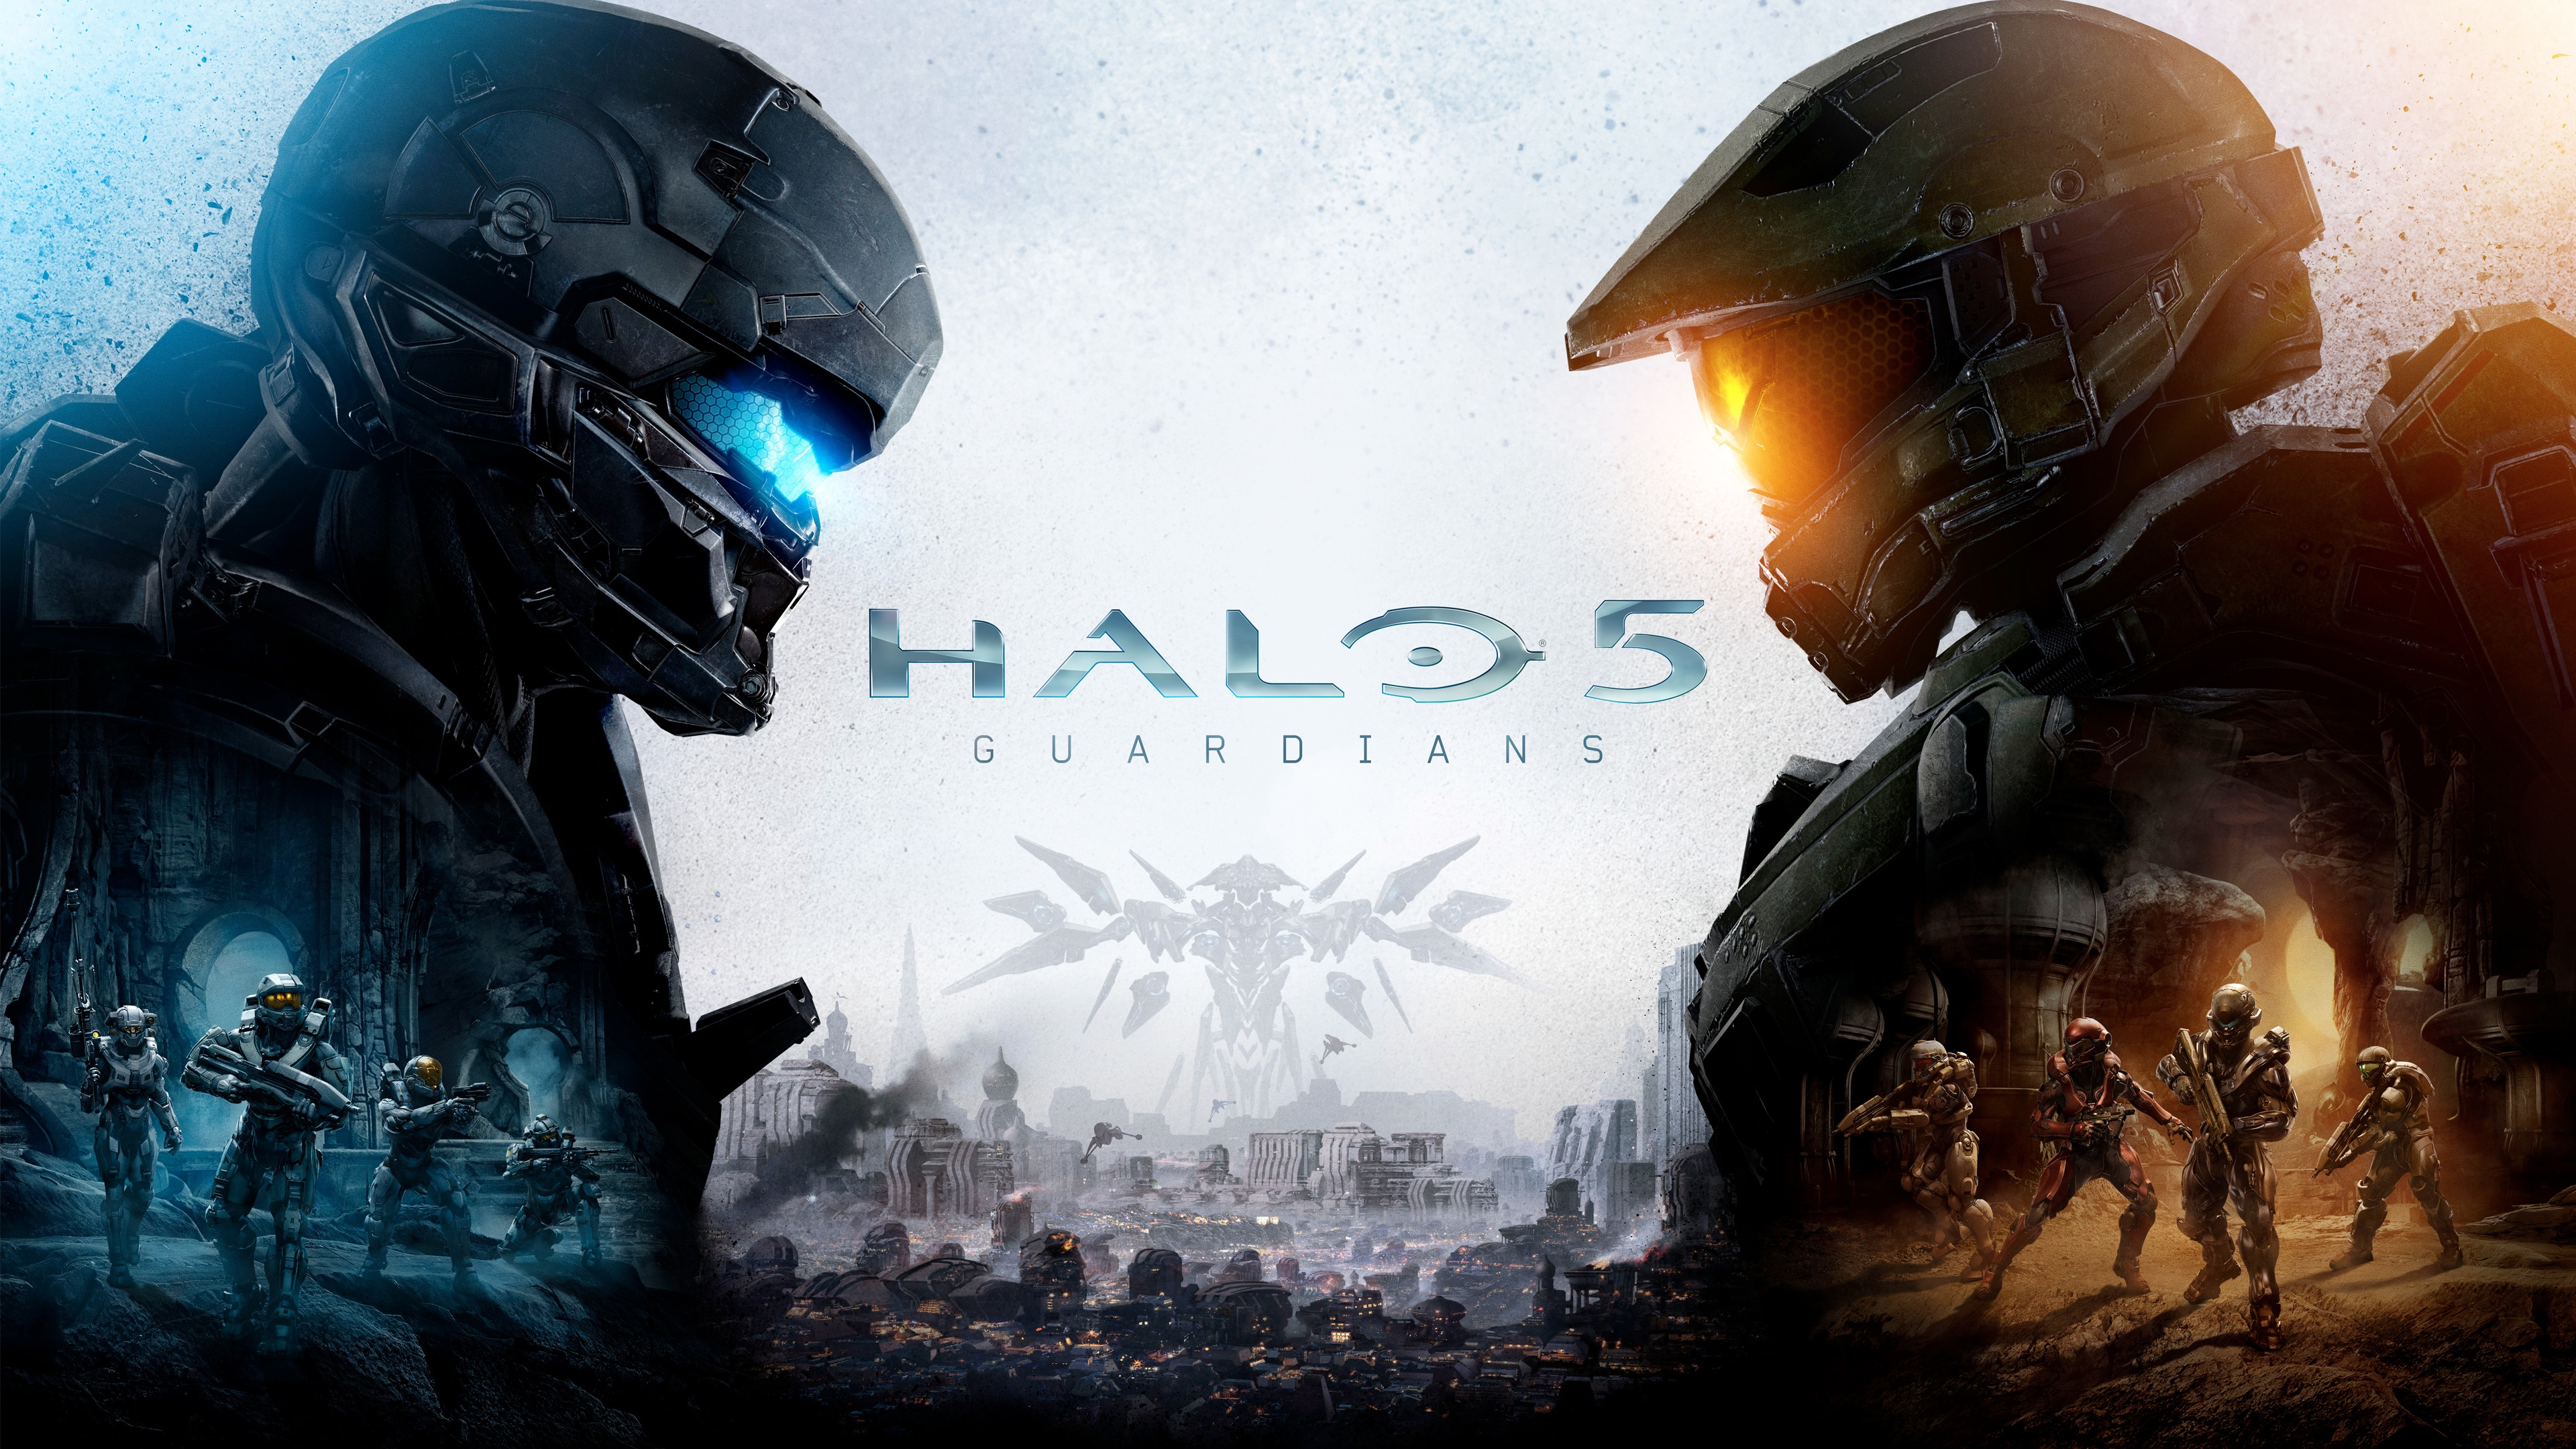 Halo 5 Guardians Wallpapers HD Wallpapers 3840x2160